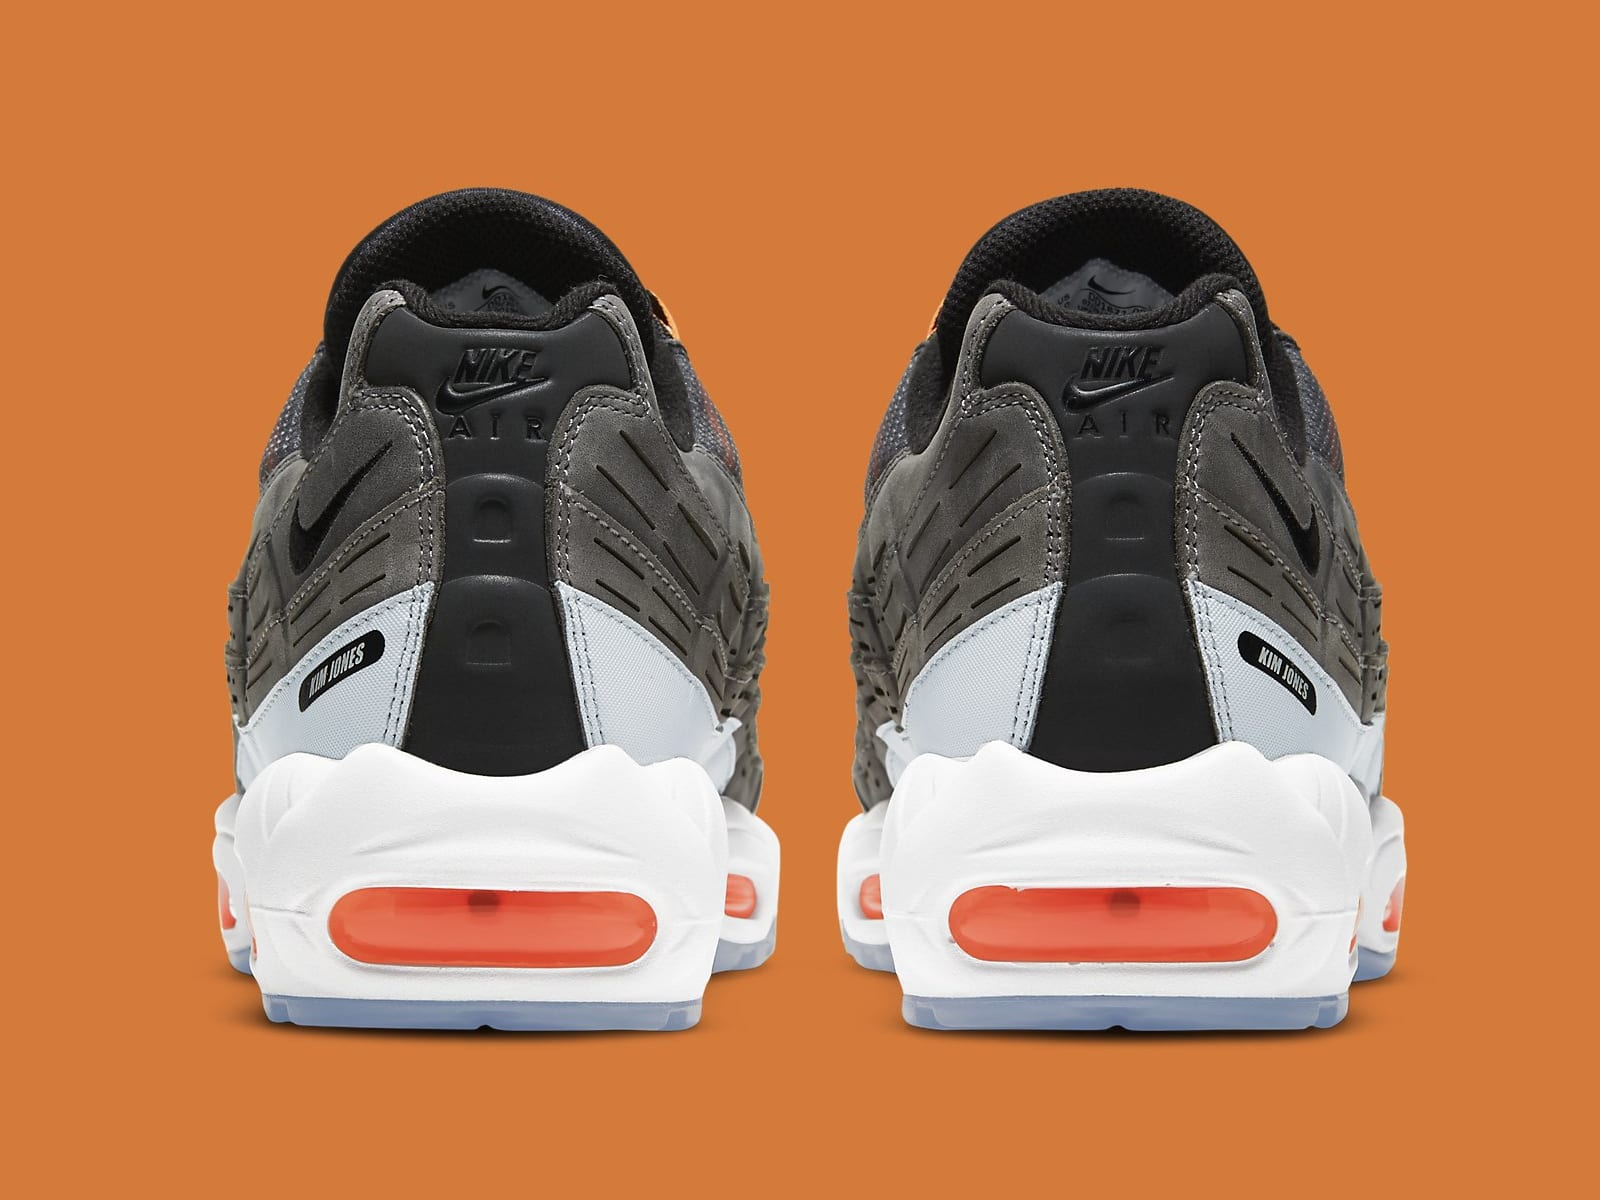 Kim Jones x Nike Air Max 95 Orange Release Date DD1871-001 Heel